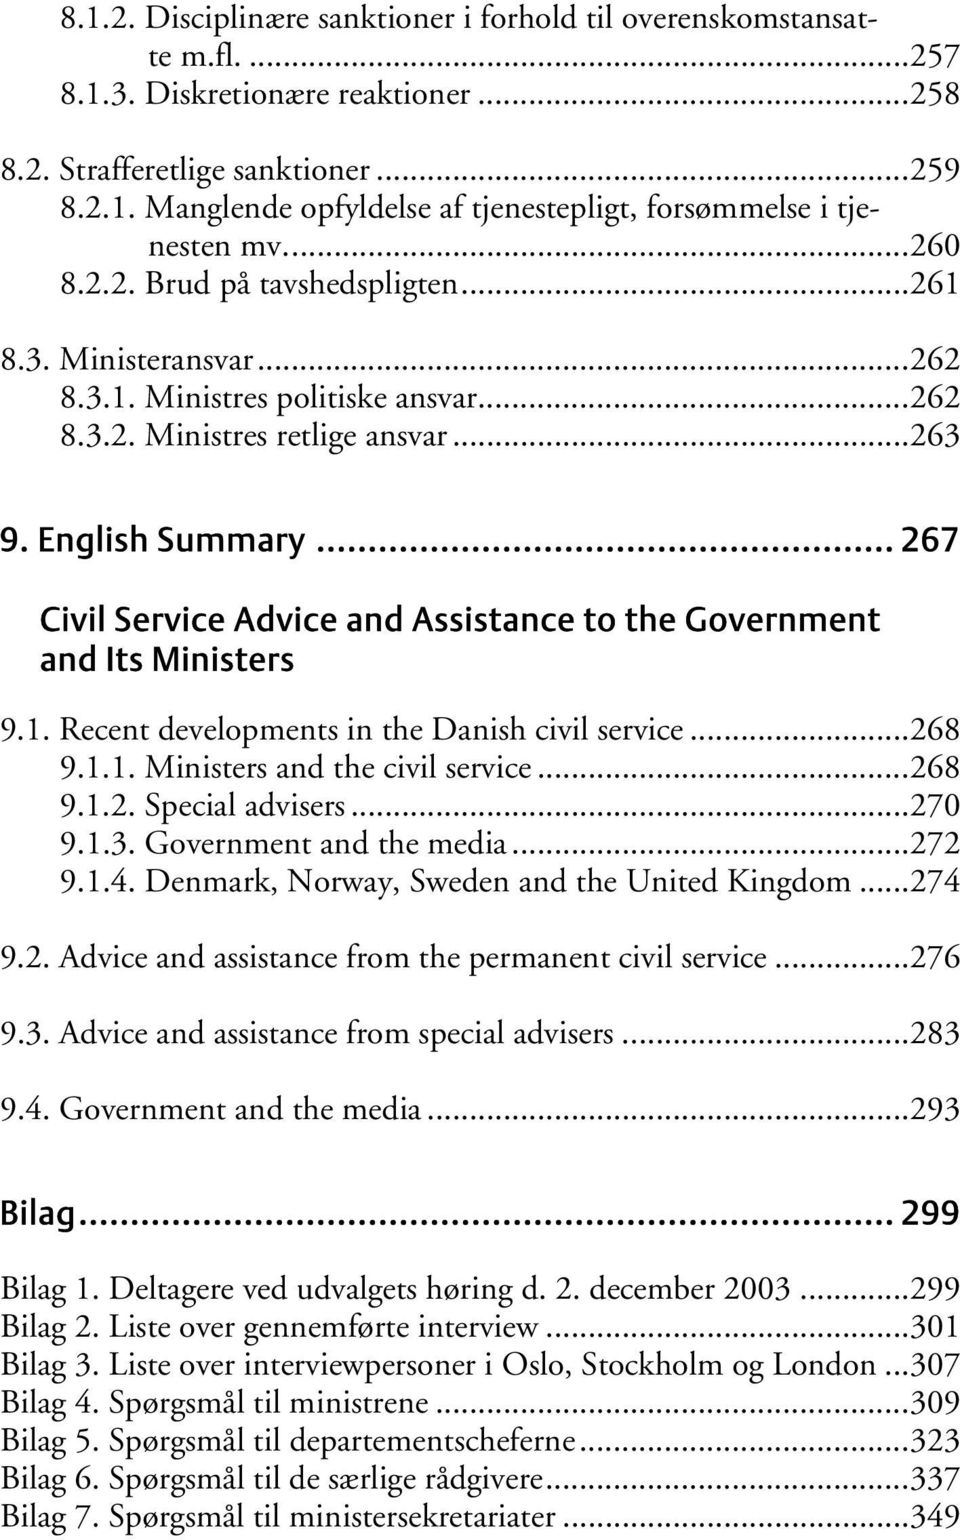 .. 267 Civil Service Advice and Assistance to the Government and Its Ministers 9.1. Recent developments in the Danish civil service...268 9.1.1. Ministers and the civil service...268 9.1.2. Special advisers.